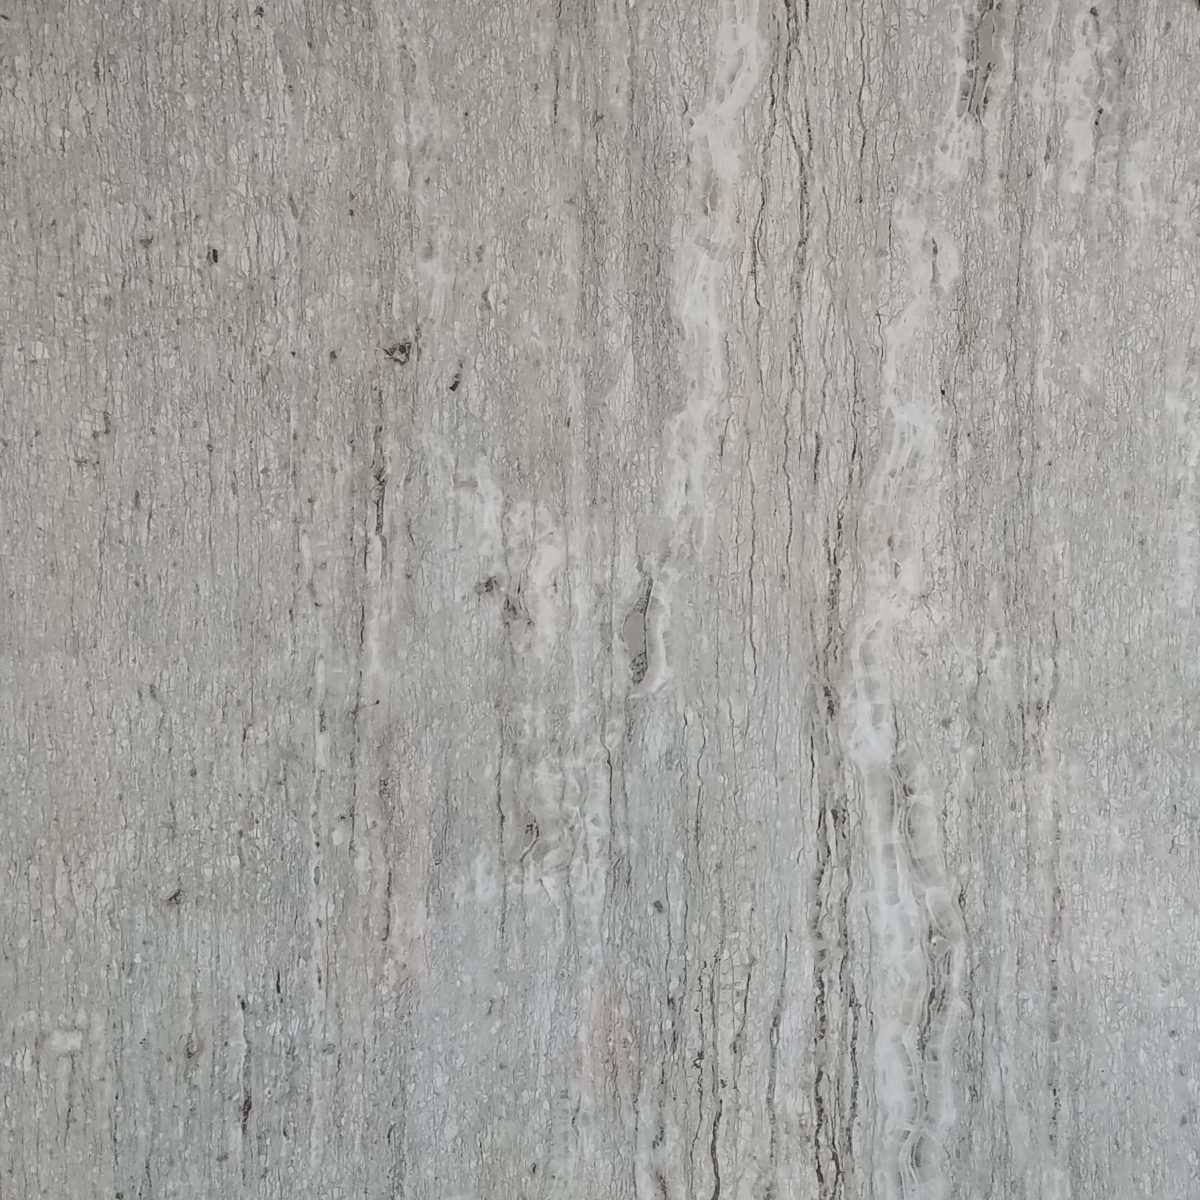 Silver Vein Cut Fully Polished Glazed Porcelain Tile Bm